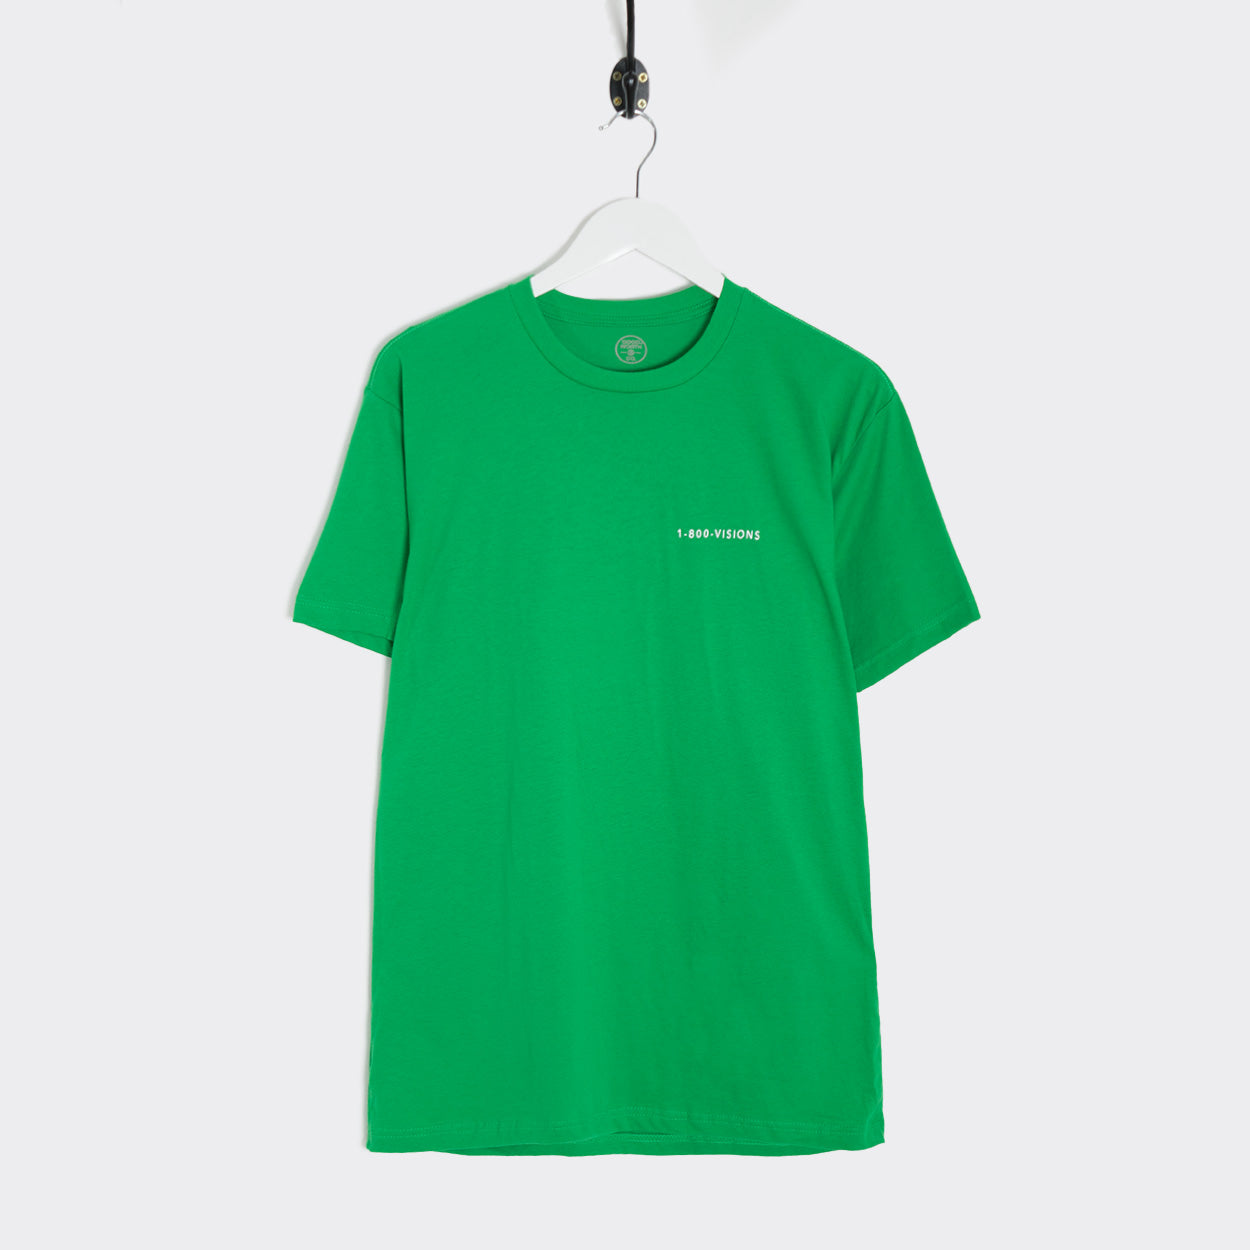 Good Worth Cactus Farm T-Shirt - Green